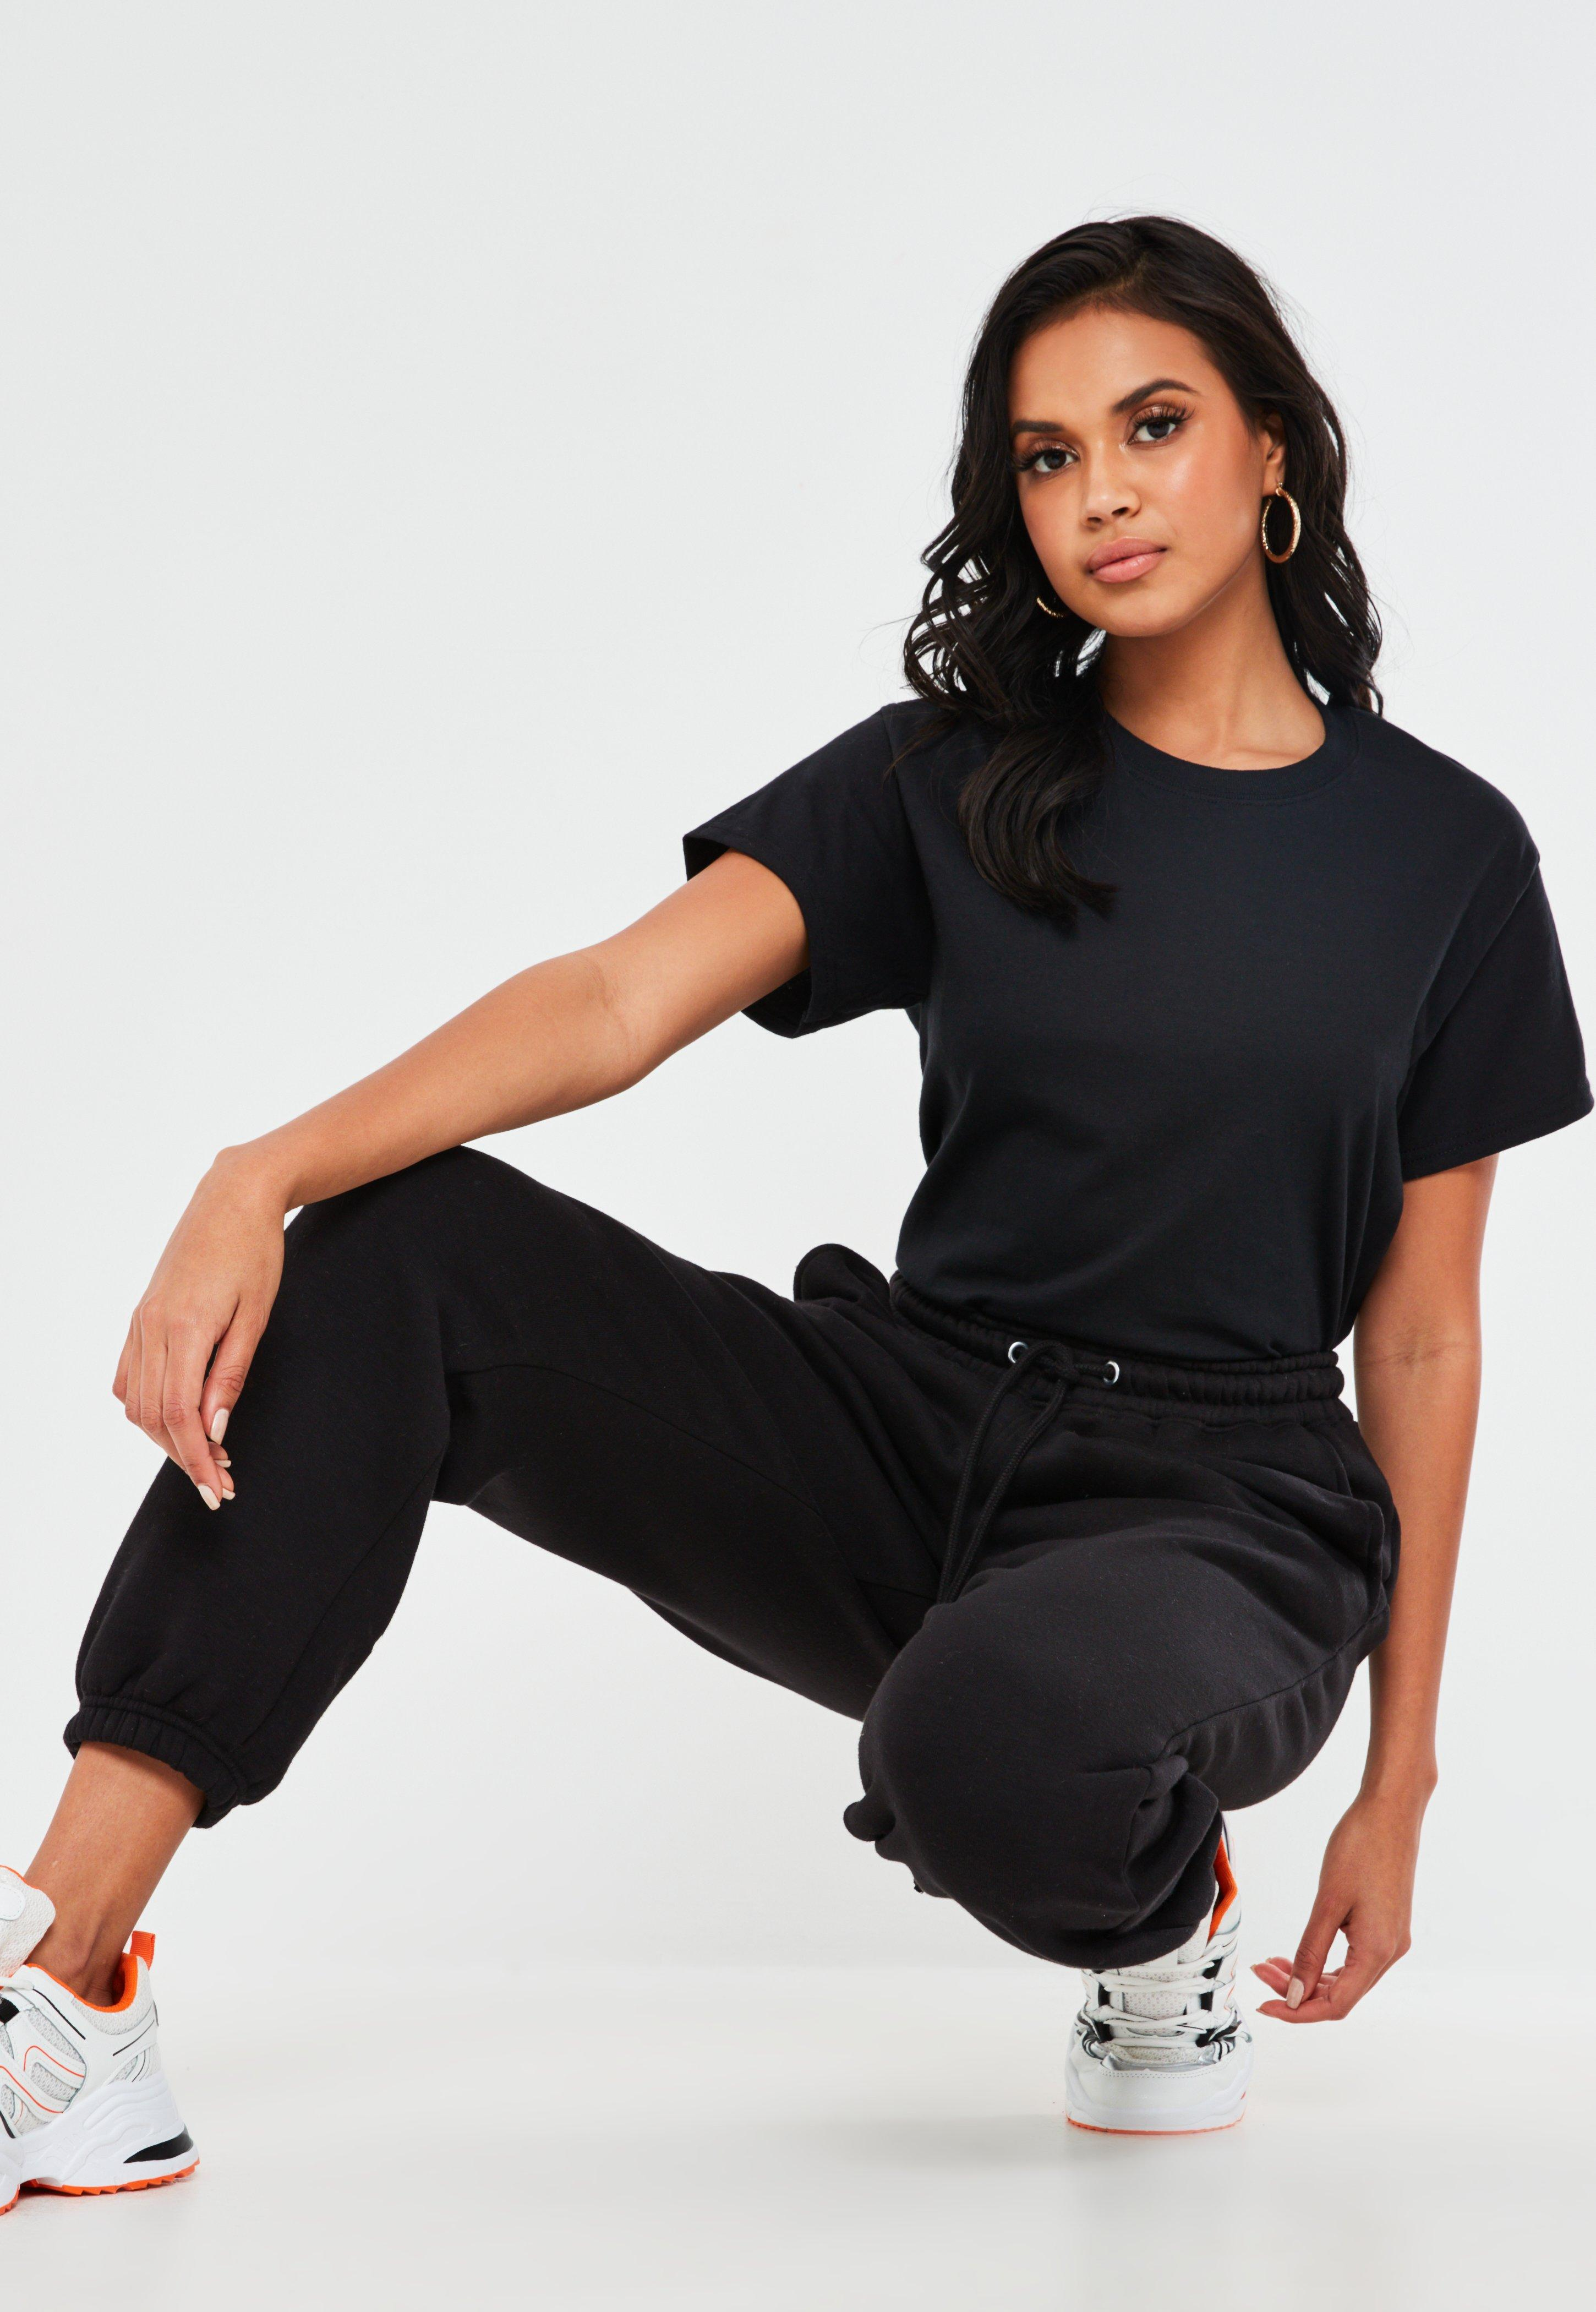 ca602a26 T-Shirts & Women's Tees - Missguided